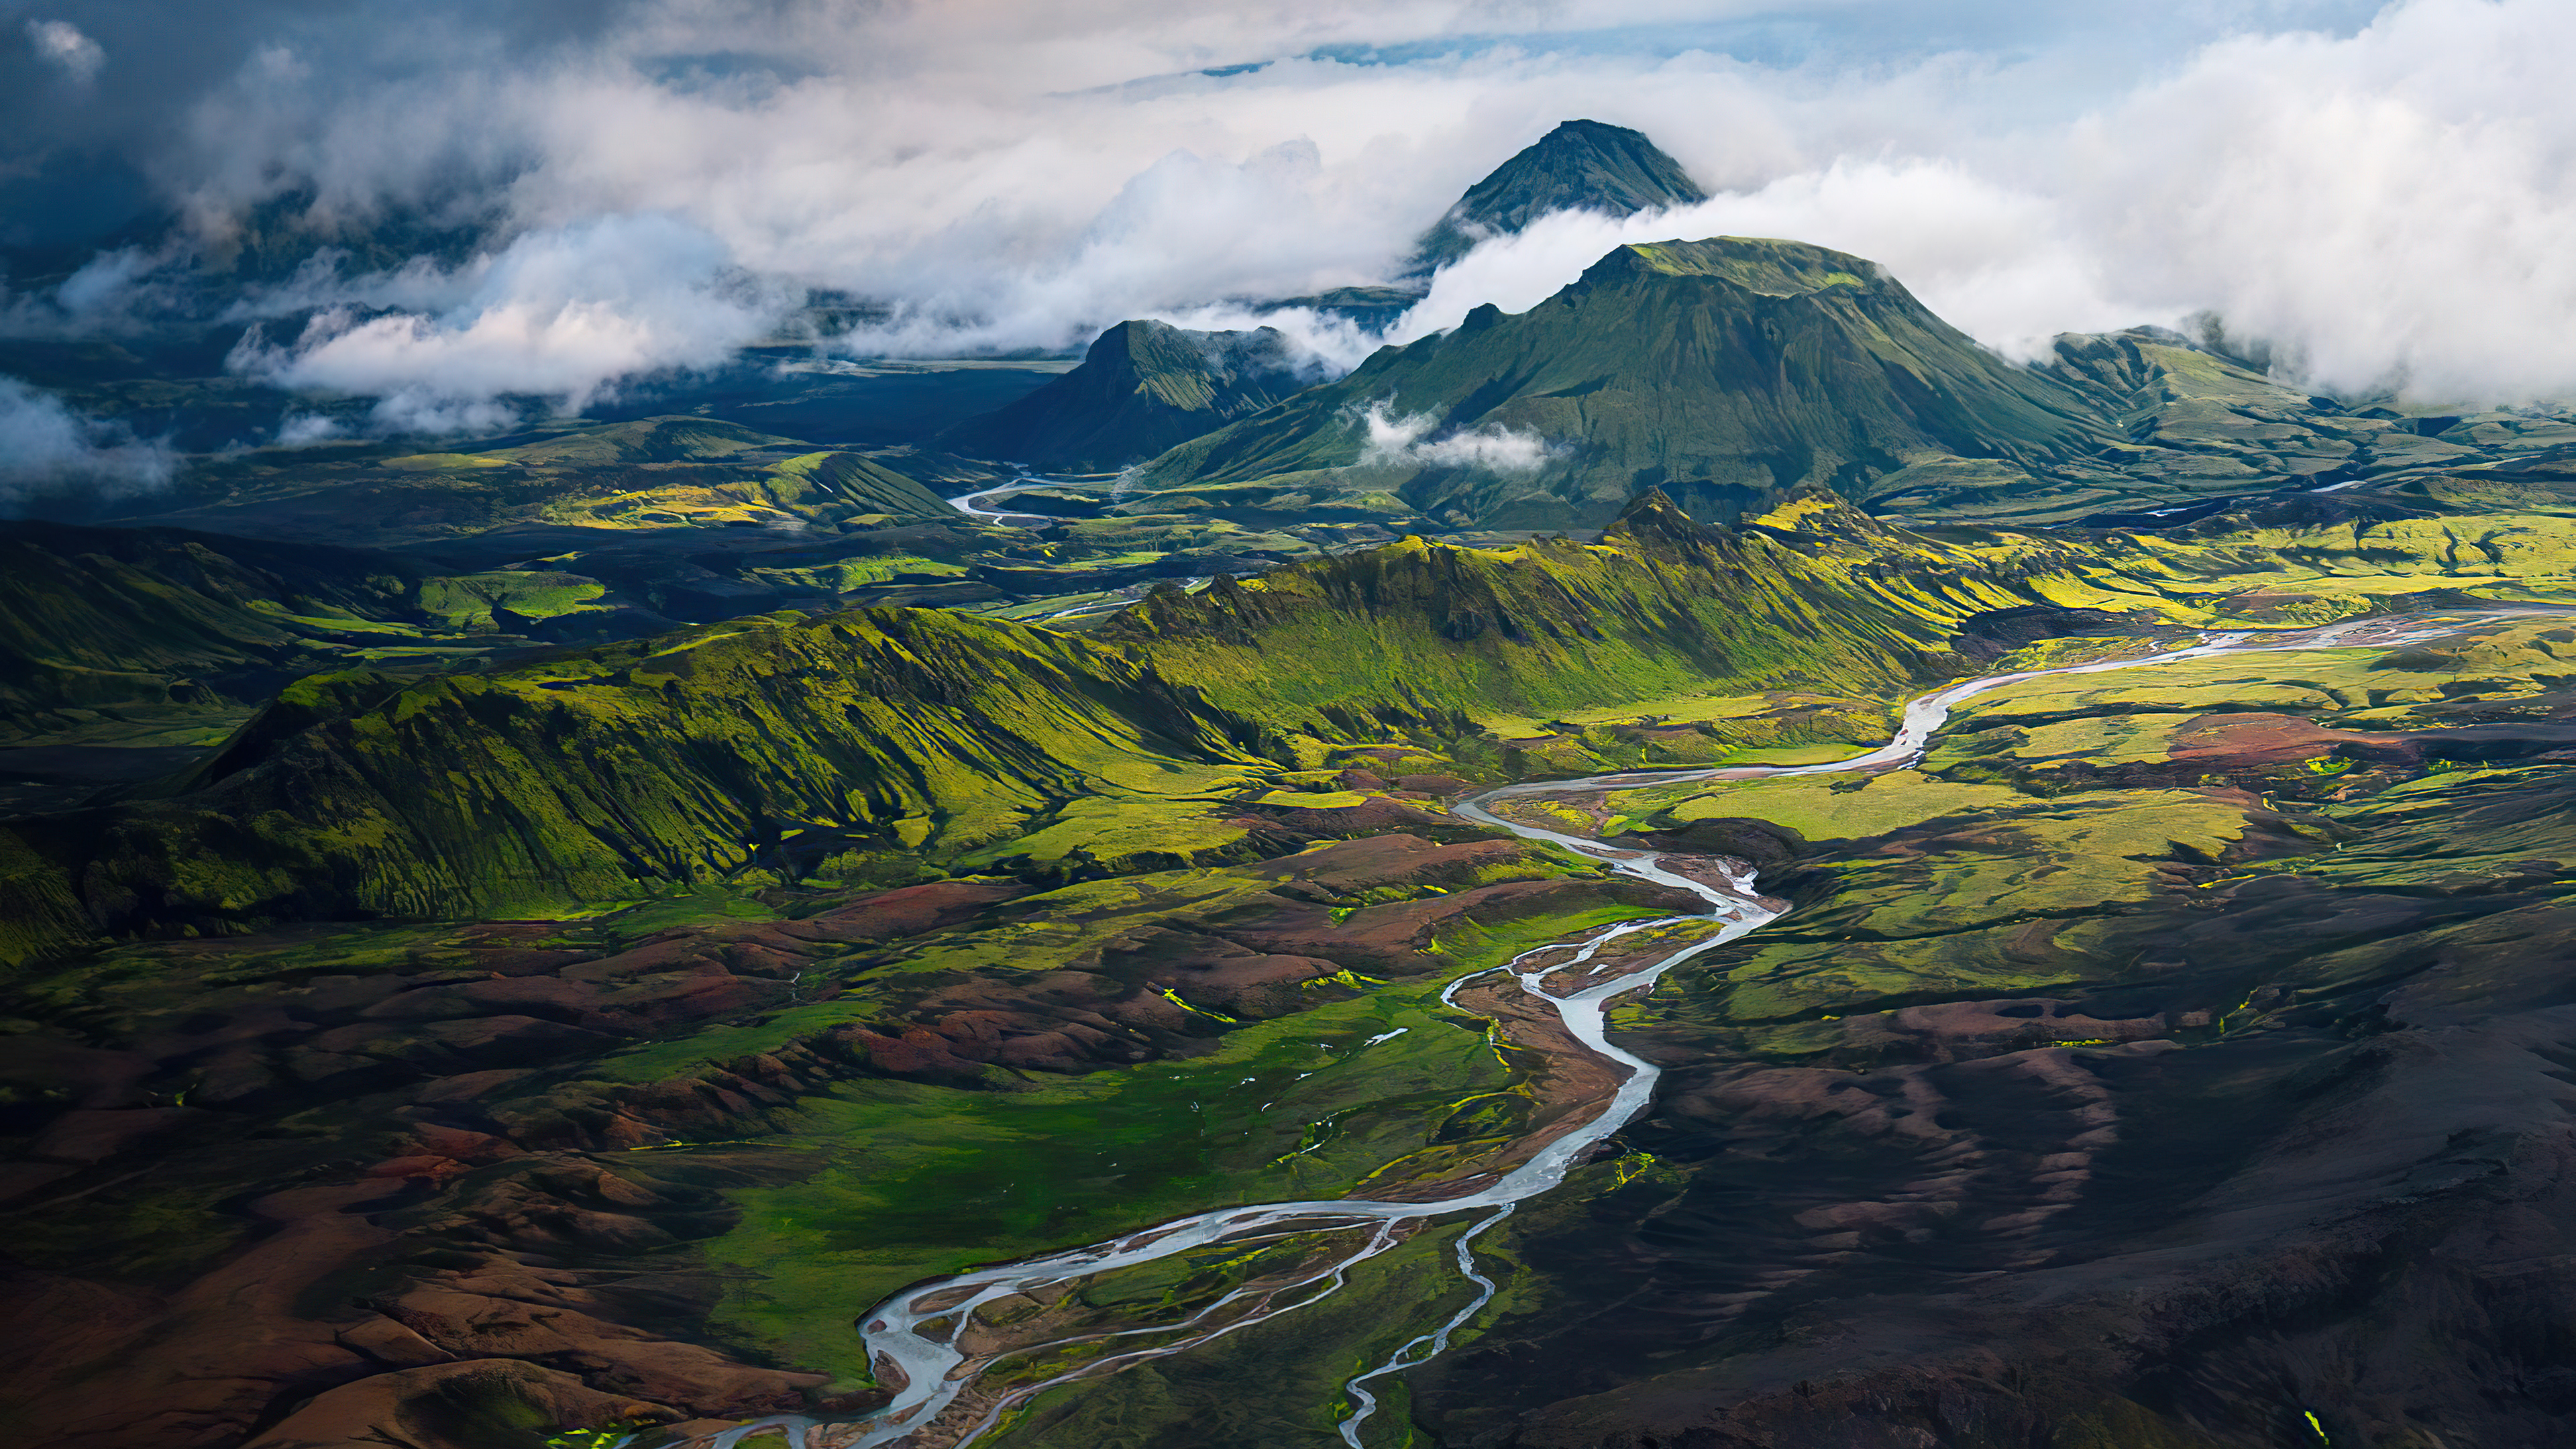 somewhere in the highlands of iceland 4k 1620166298 - Somewhere In The Highlands Of Iceland 4k - Somewhere In The Highlands Of Iceland 4k wallpapers